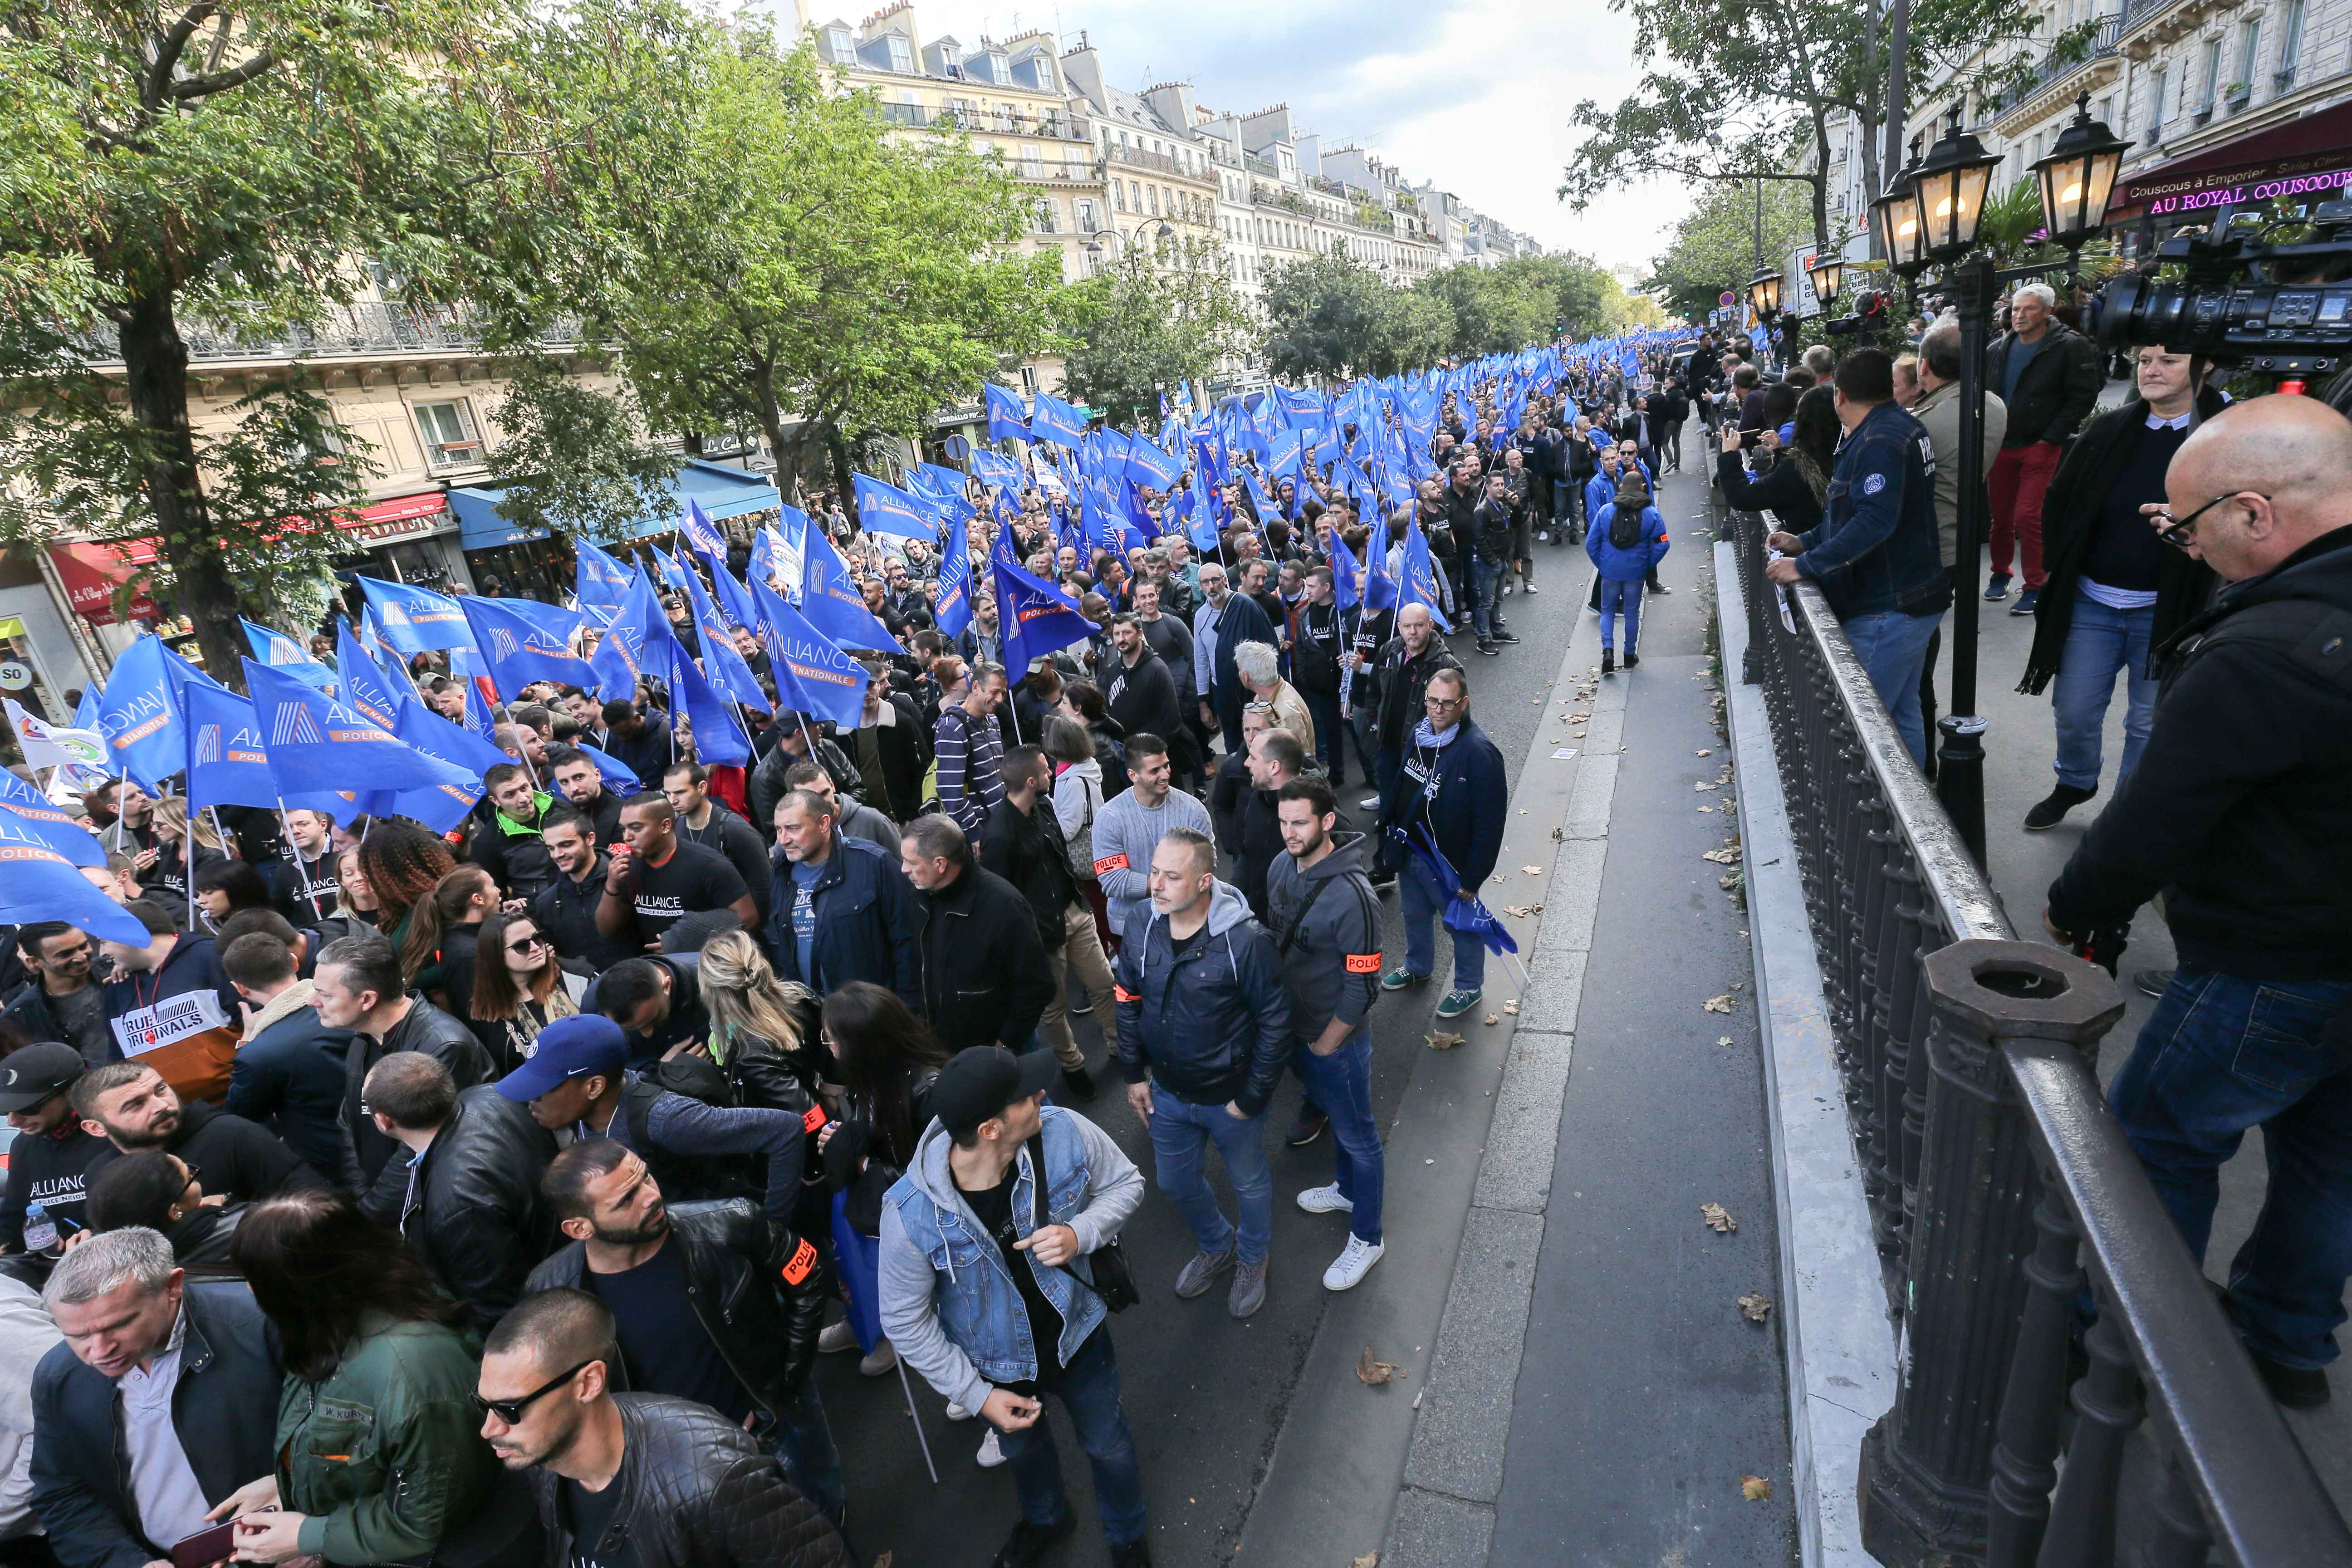 """At the call of the National Police unions, several thousand police officers demonstrated in Place de la Bastille on 2 October 2019 in Paris. For the first time in 20 years, all unions have called for a """"March of Wrath"""" while 50 police officers have killed"""